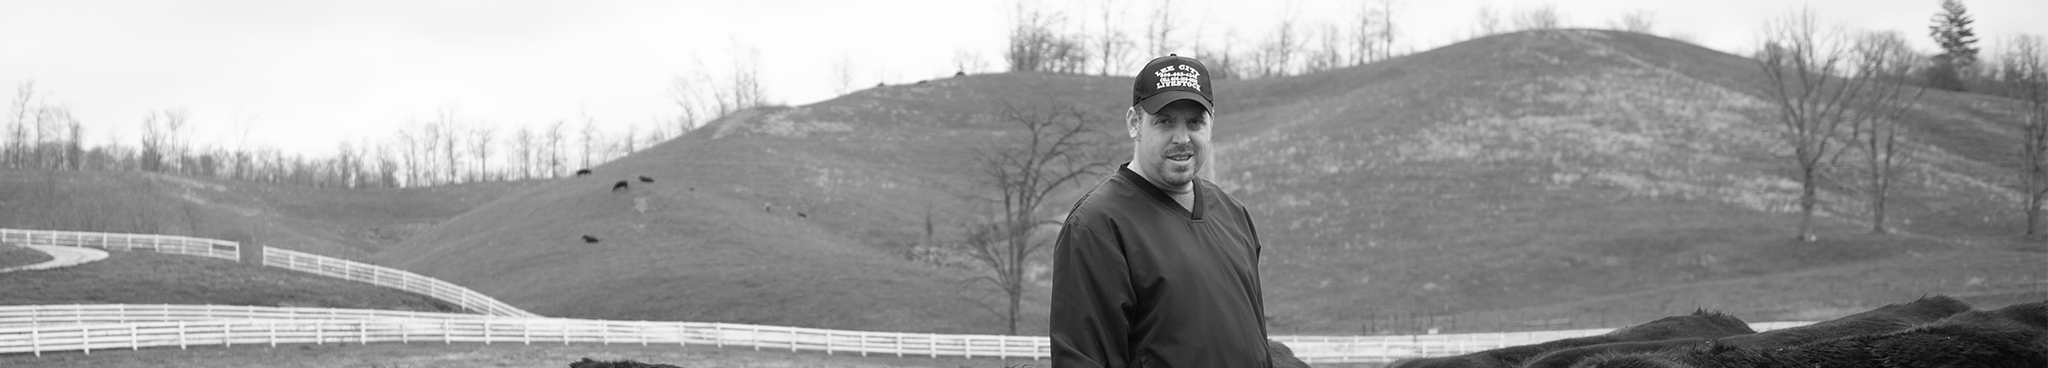 JONATHAN OF JSW FARMS IN LIBERTY (OR HAZEL GREEN), KENTUCKY. TRUSTED SUPPLIER OF RANCH-RAISED BEEF.